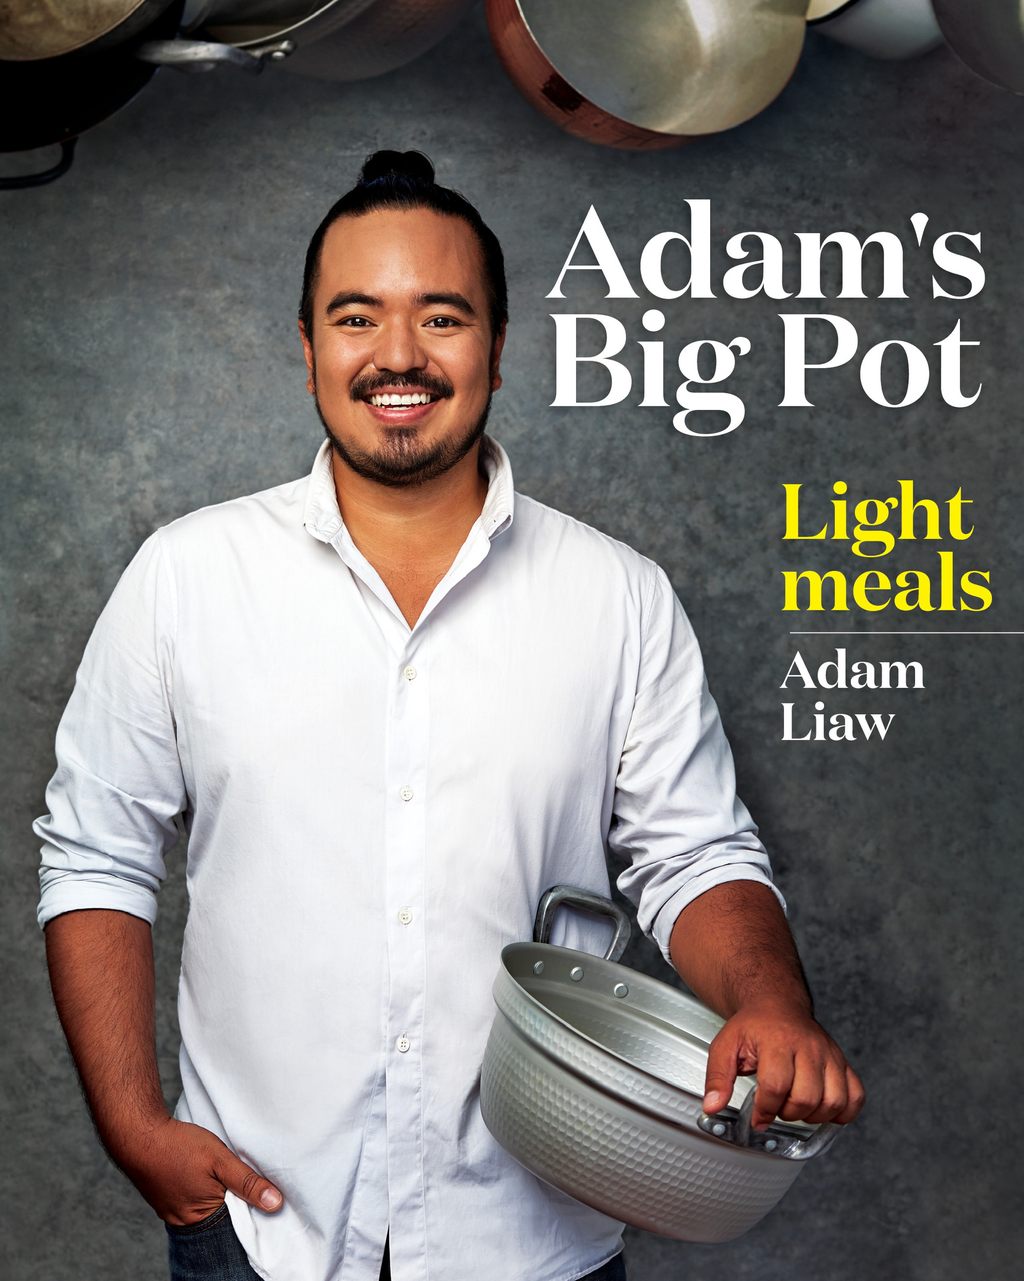 Adam's Big Pot Light Meals